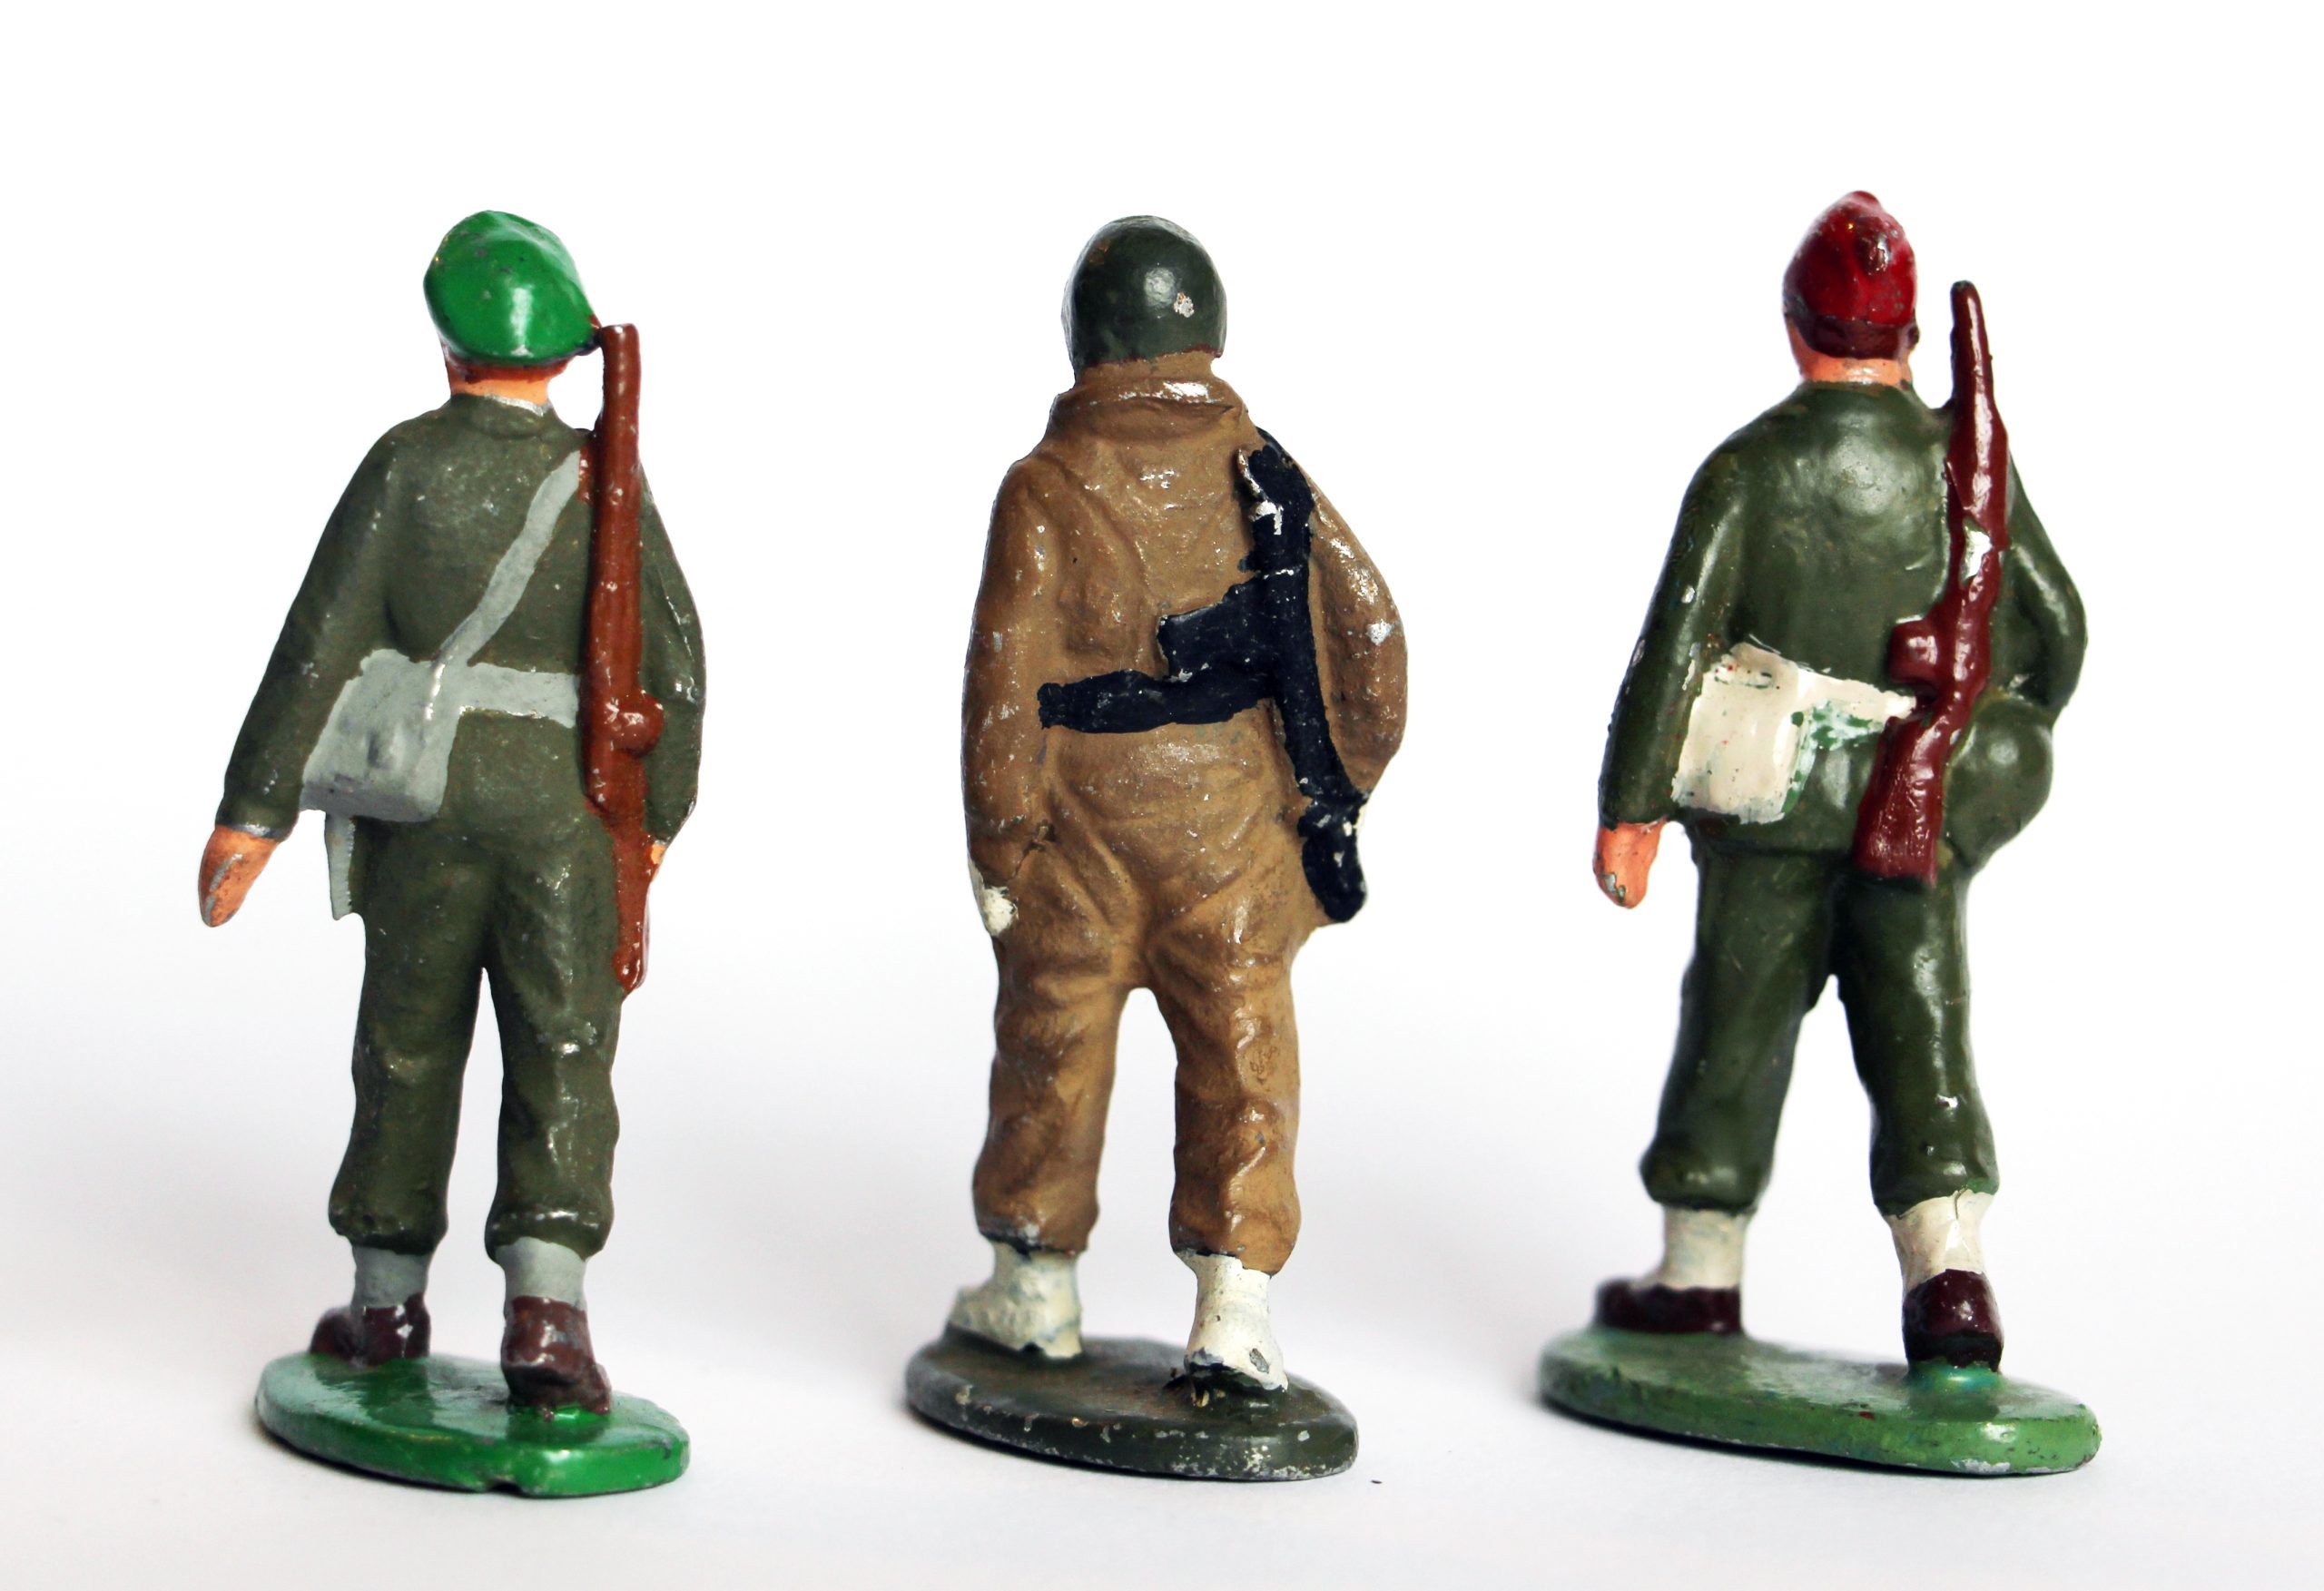 3 Figurines Quiralu Infanterie - 2nd Guerre Mondiale - Repeintes